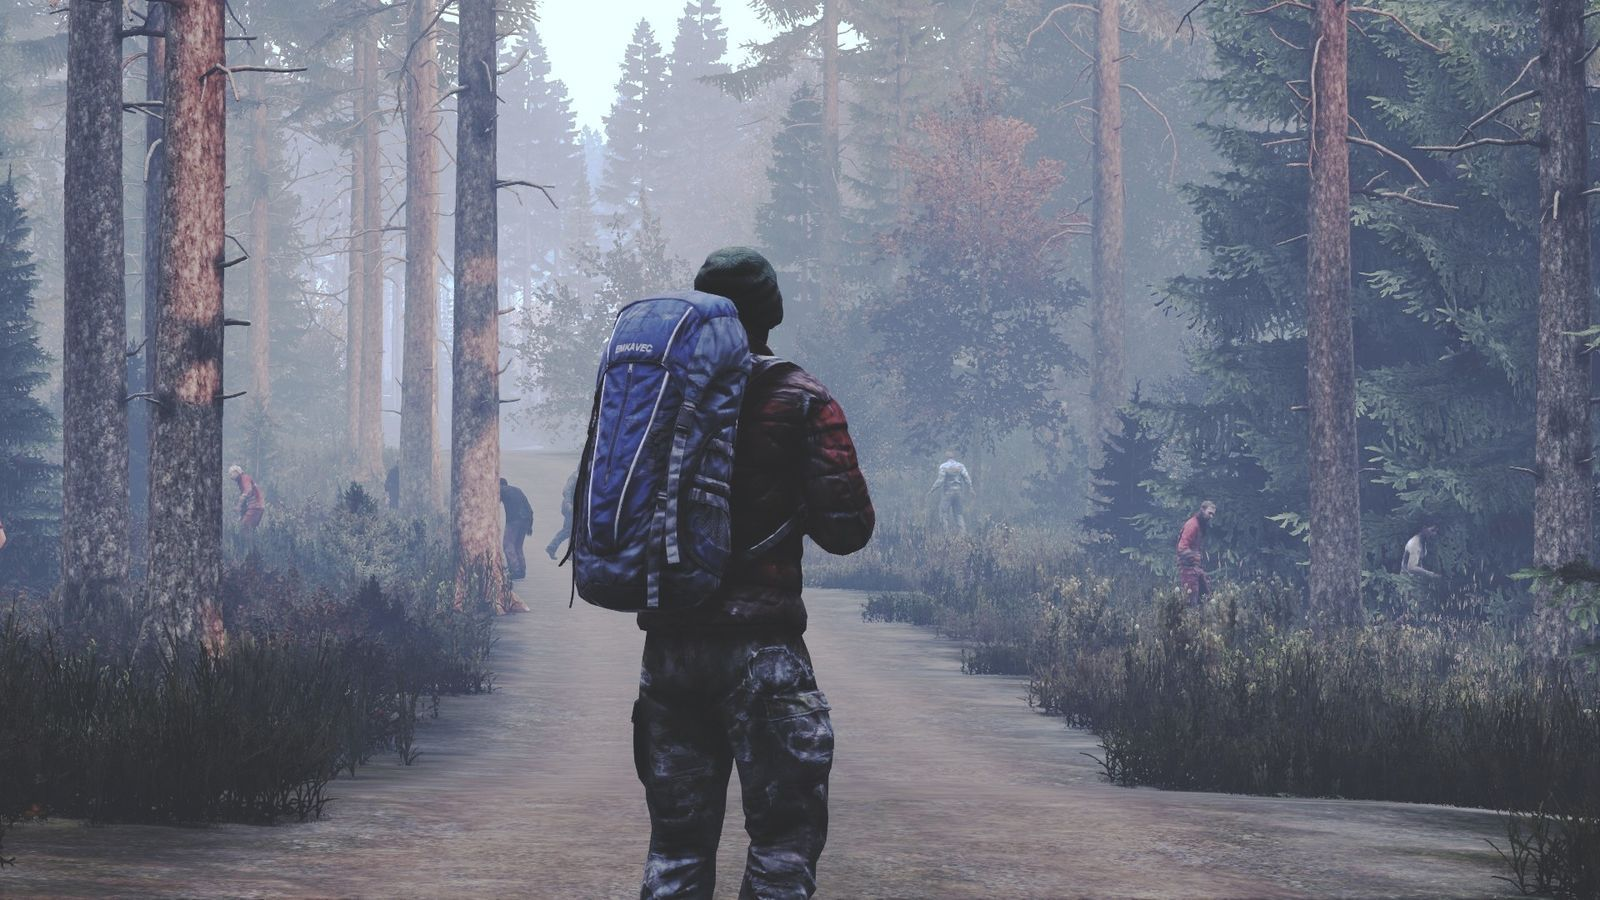 dayz images hd